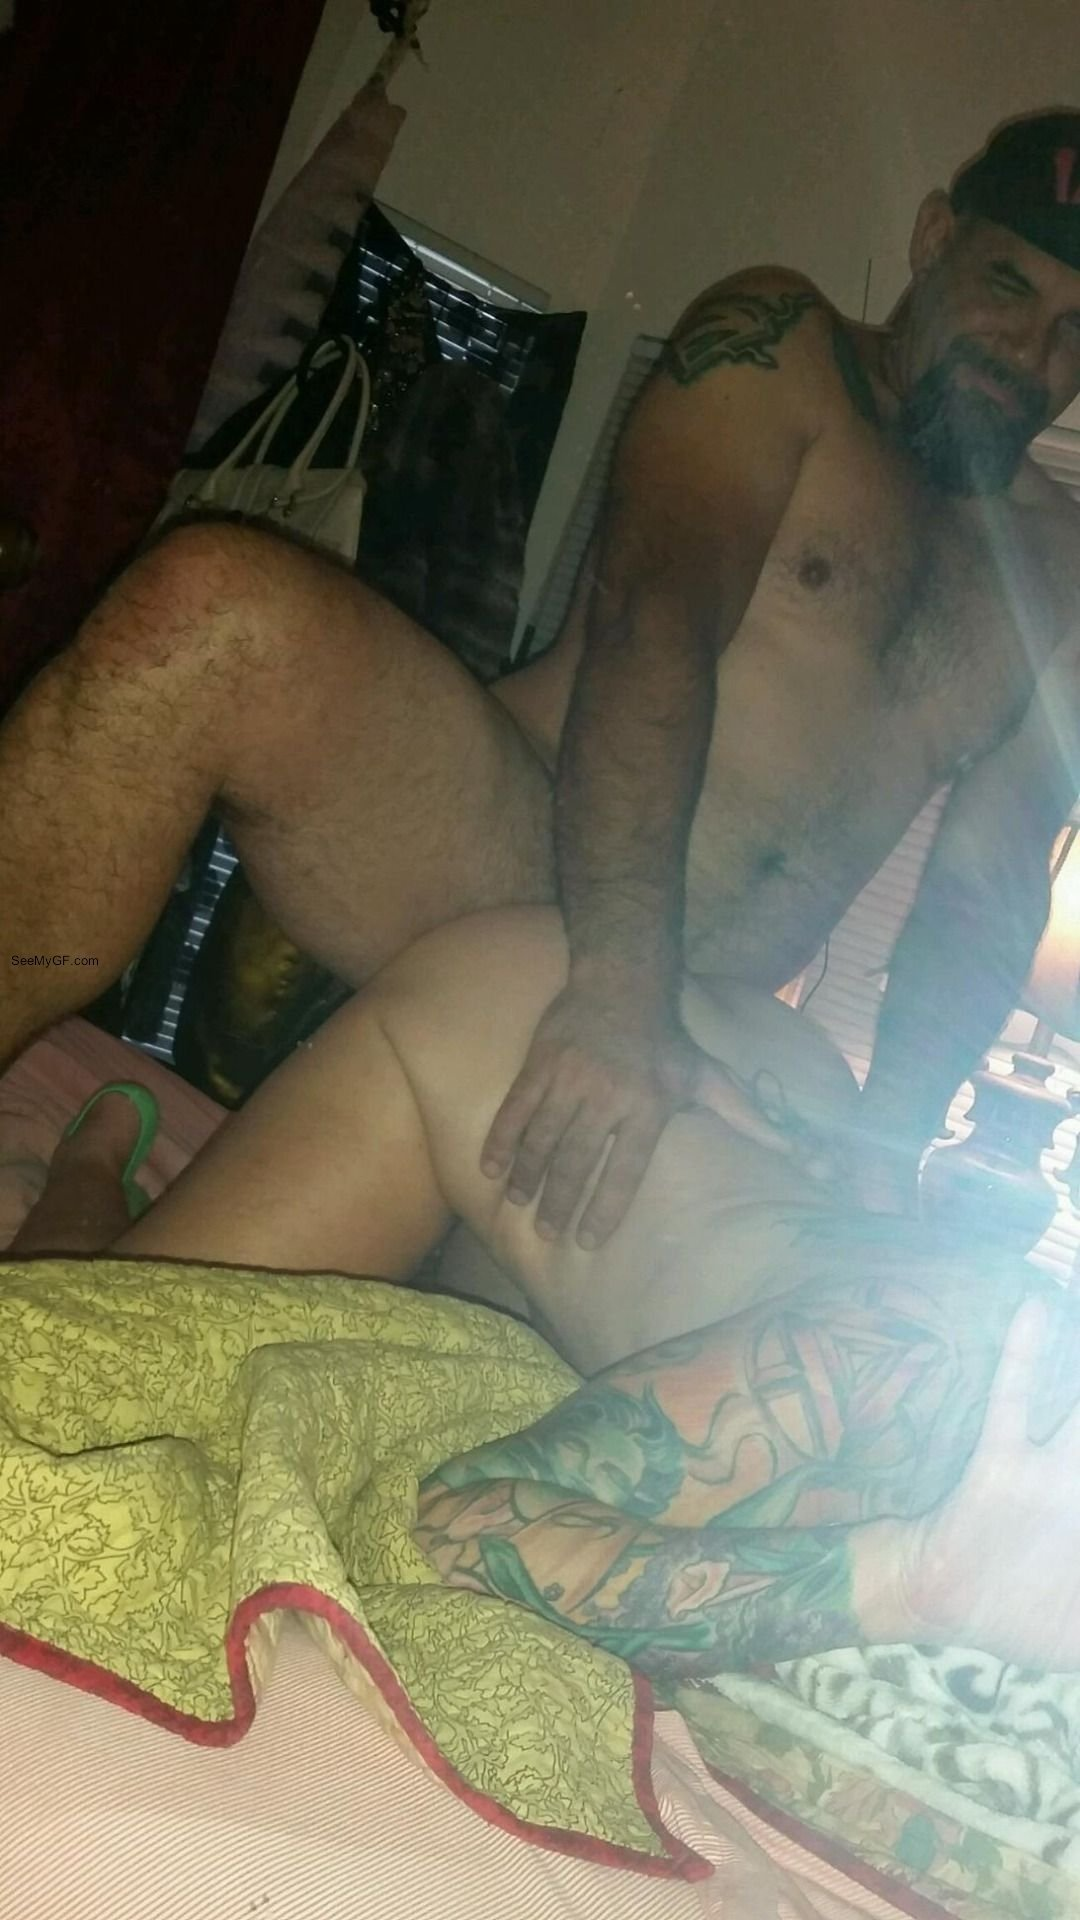 crazy naked women pussy tits ass pics